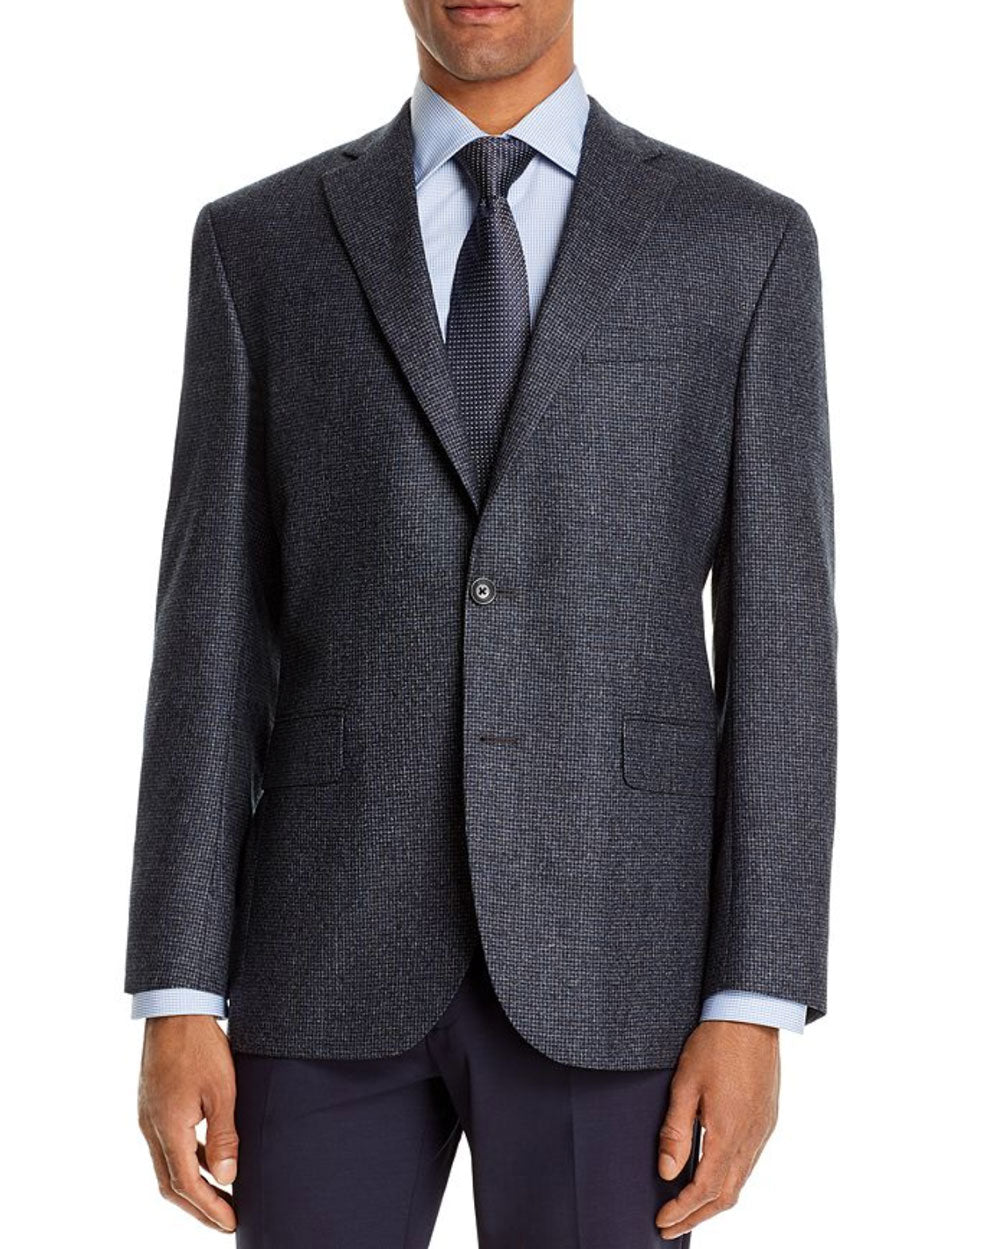 Micro-Check Blue Modern Fit Sport Coat